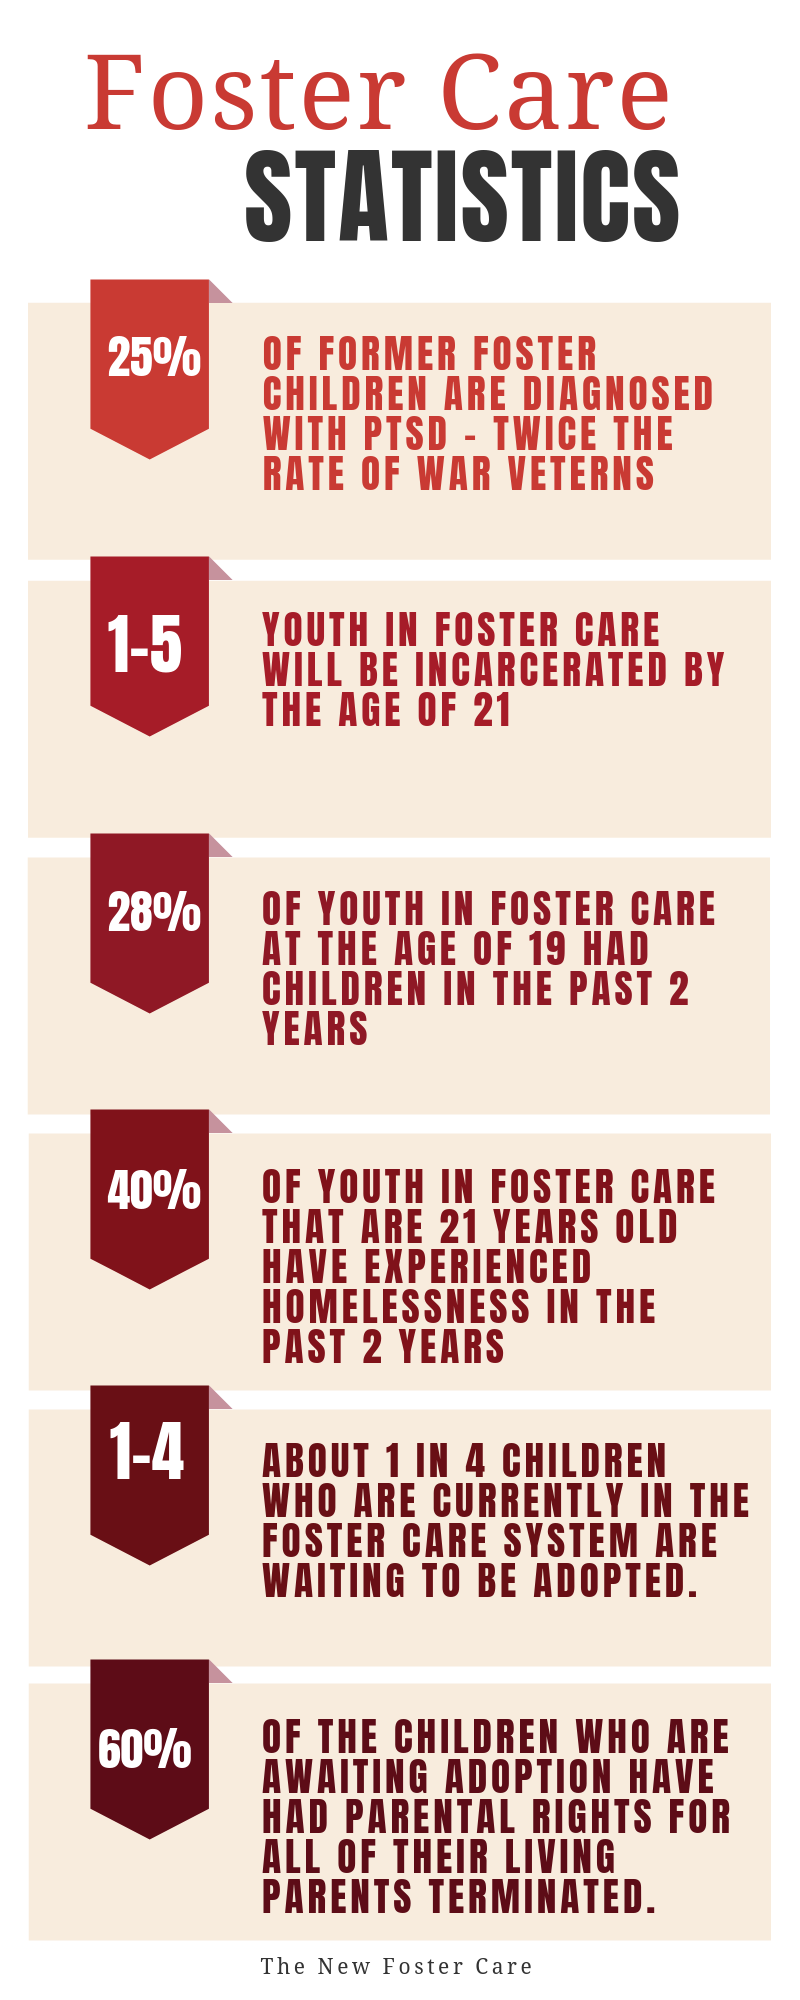 Here are some of the most recent statistics on youth in